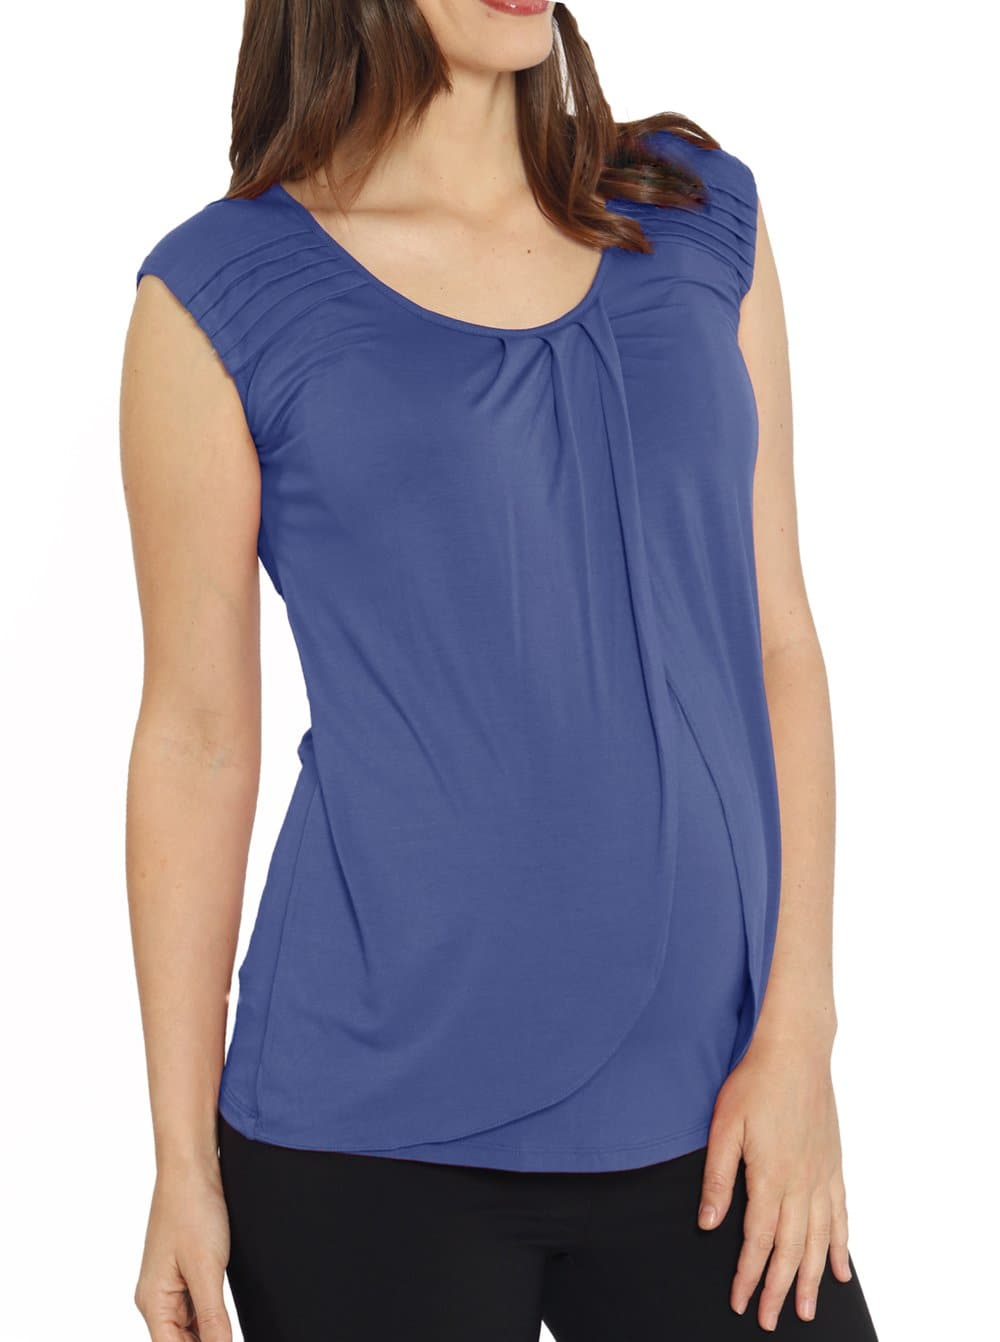 easy opening nursing top for summer